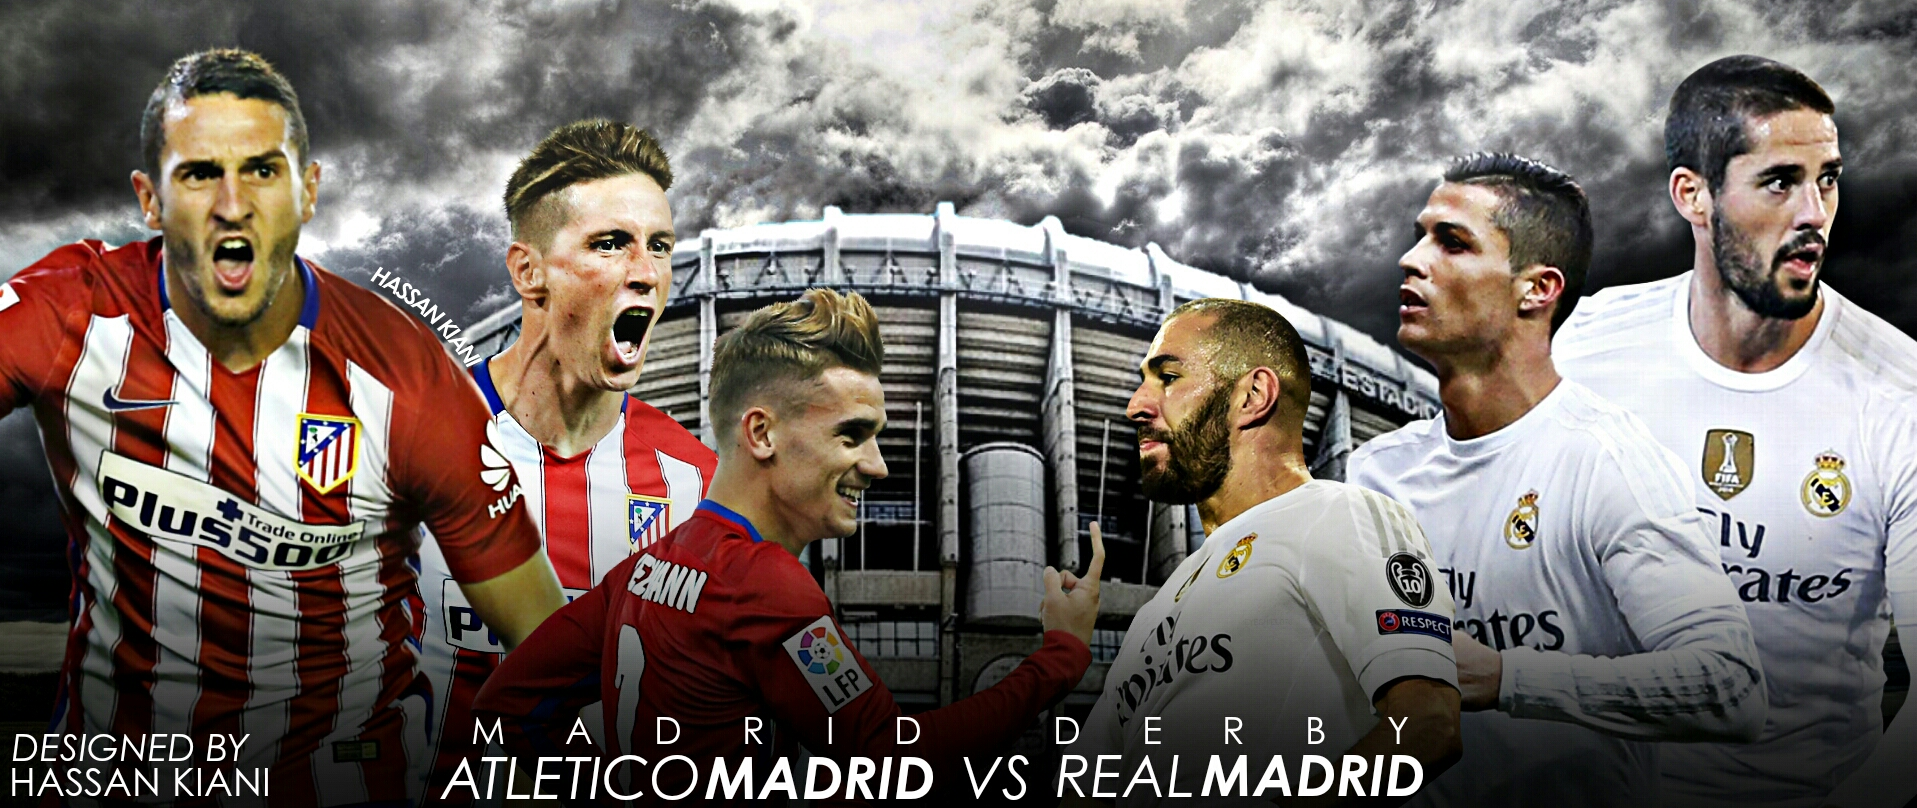 Atletico Madrid Vs Real Madrid: Atletico Madrid Vs. Real Madrid By HassanGraphics7 On